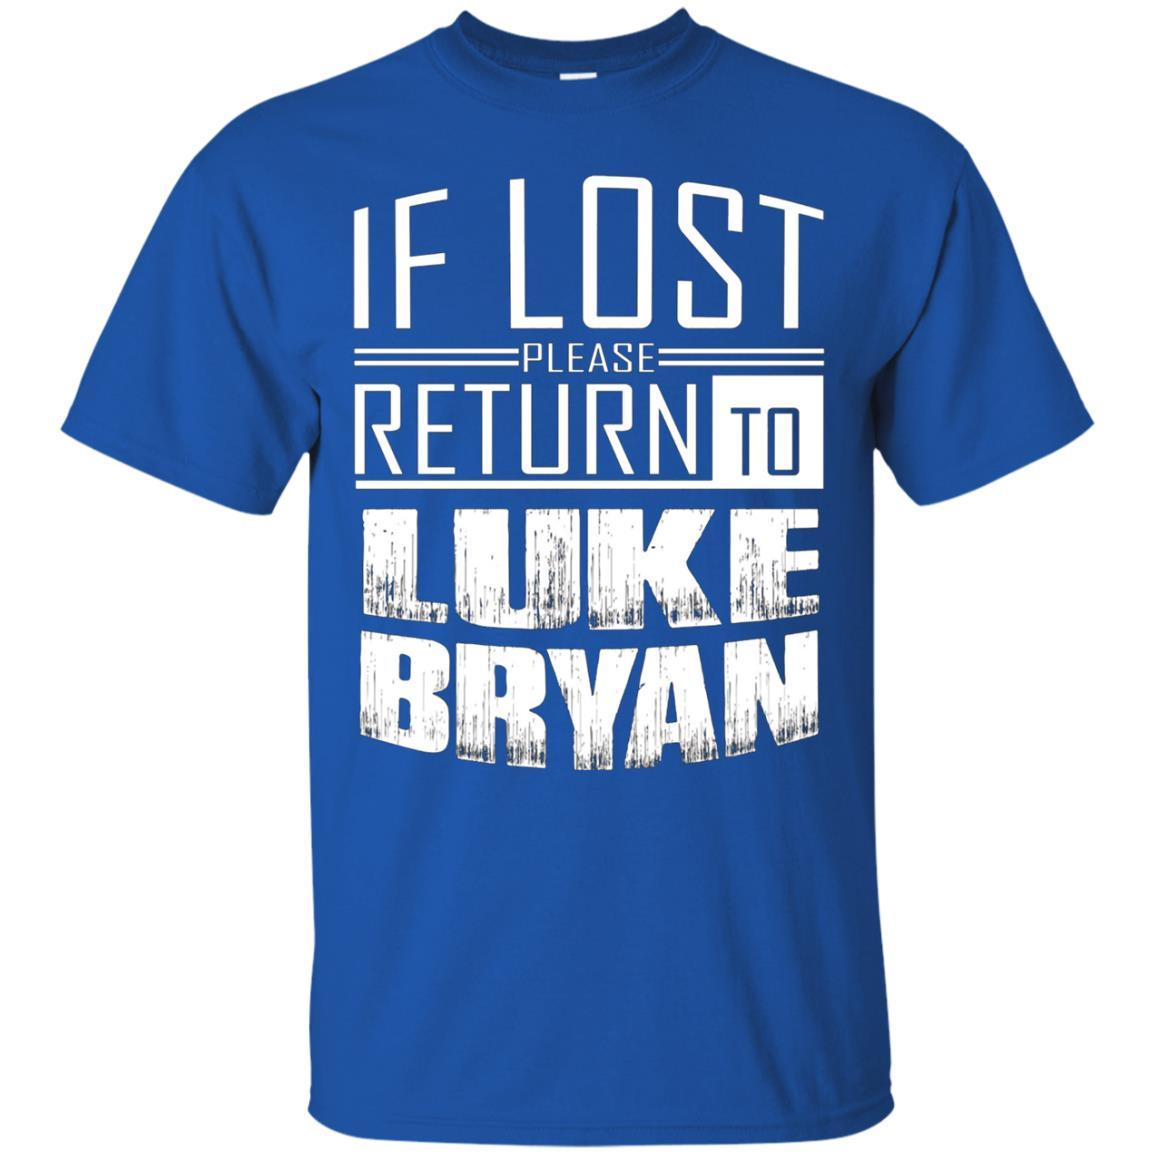 if lost please return to luke name bryan T-Shirt Royal / 5XL